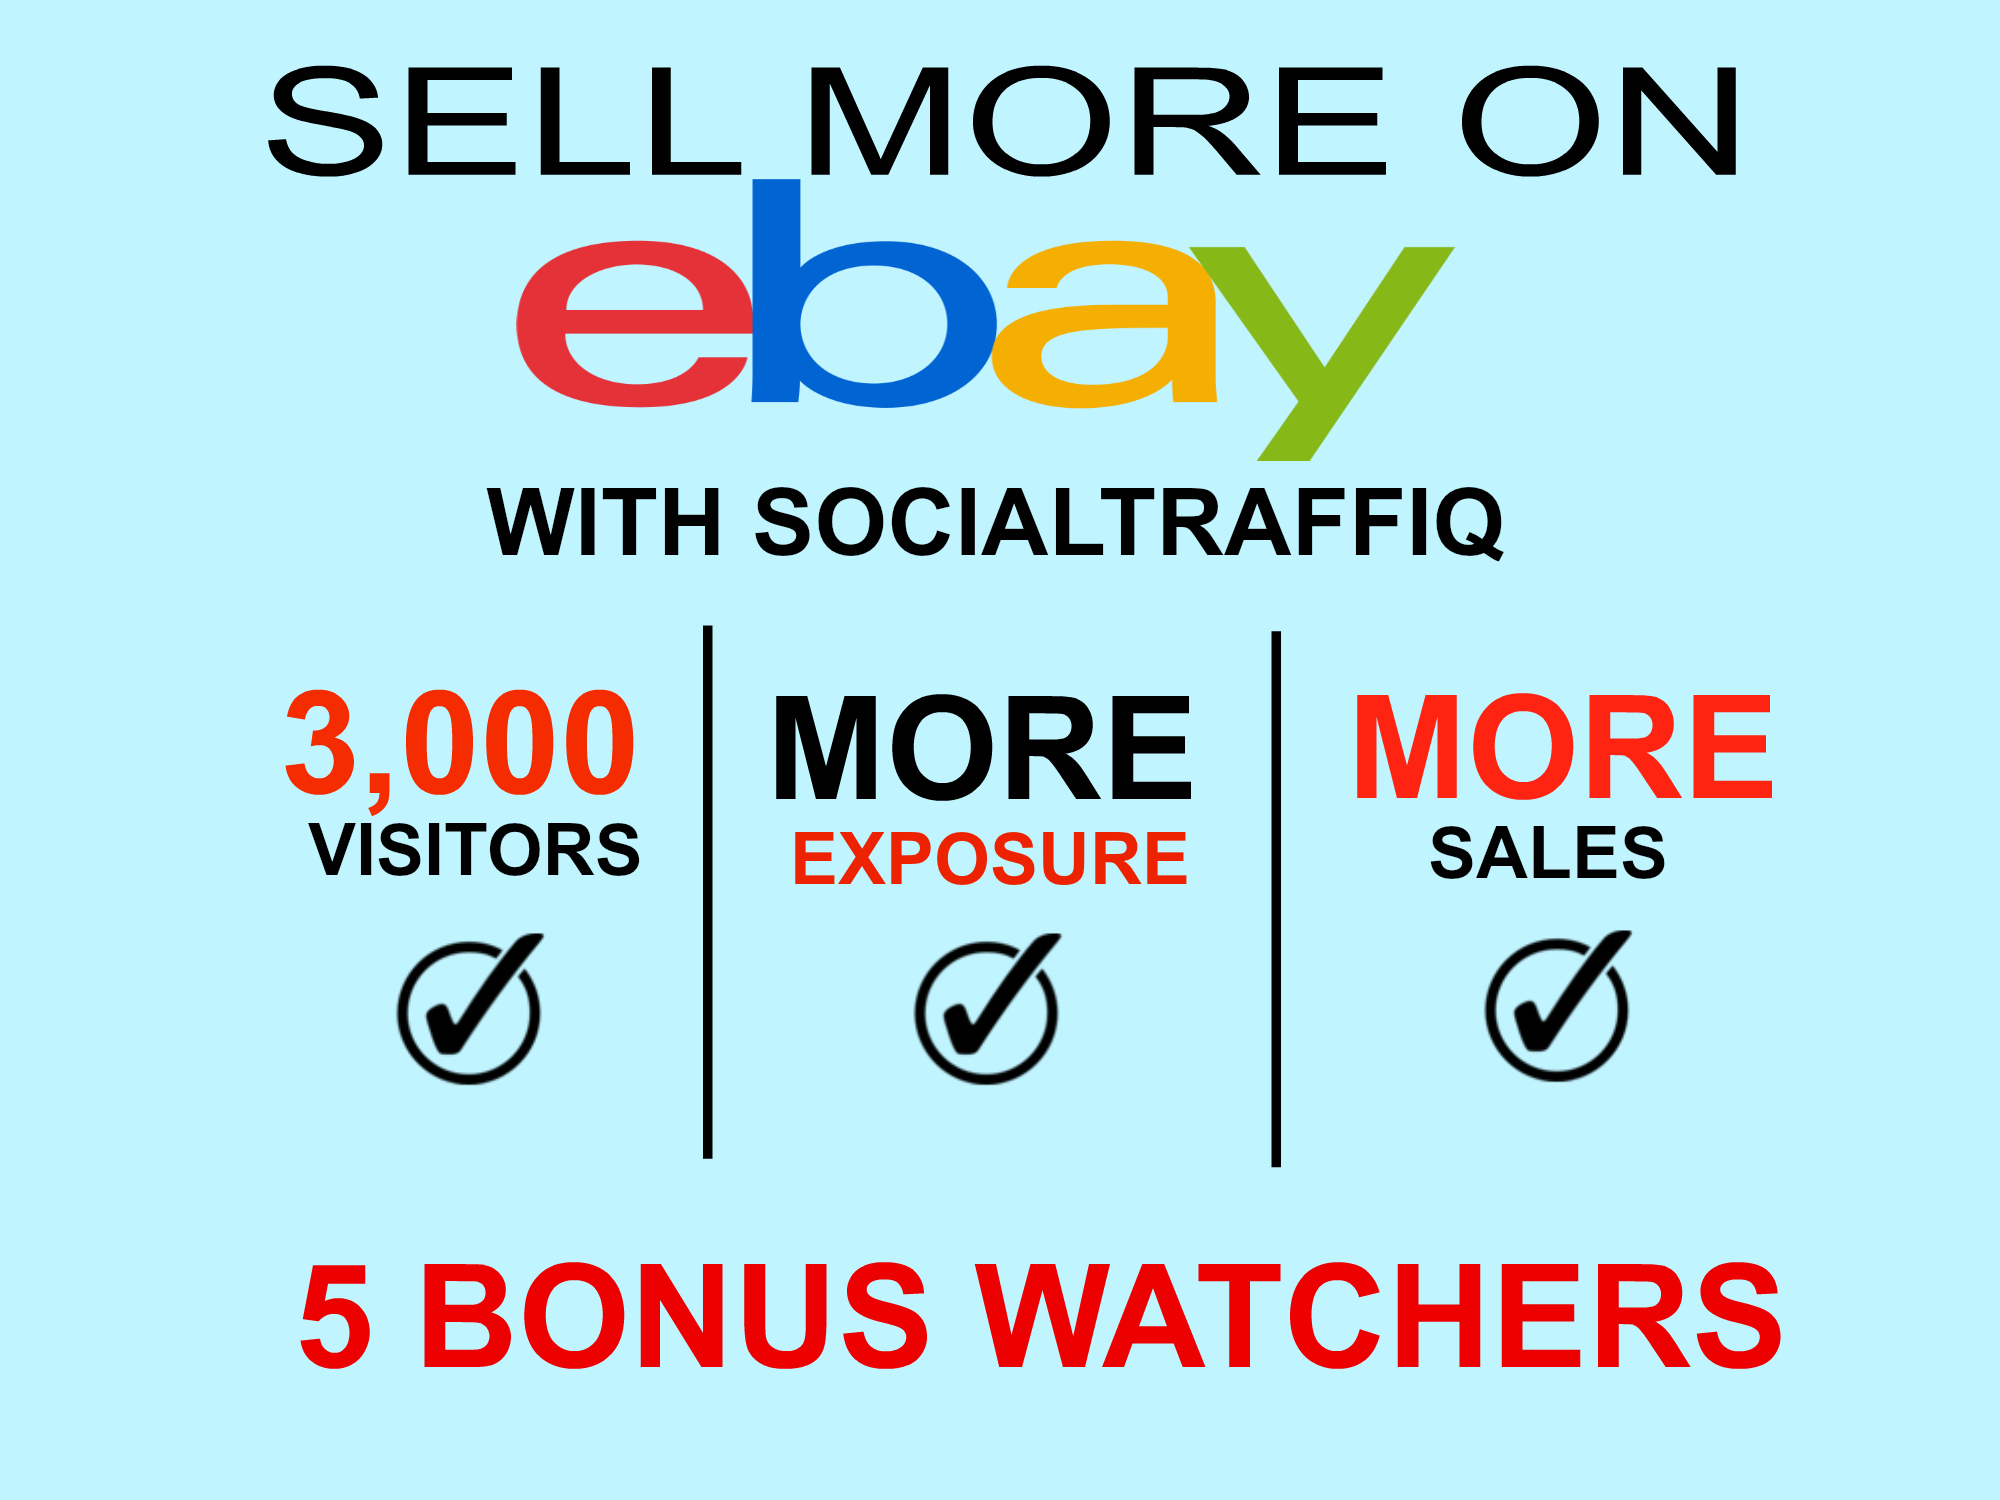 Deliver 3,000 views and 5 watchers for your ebay product